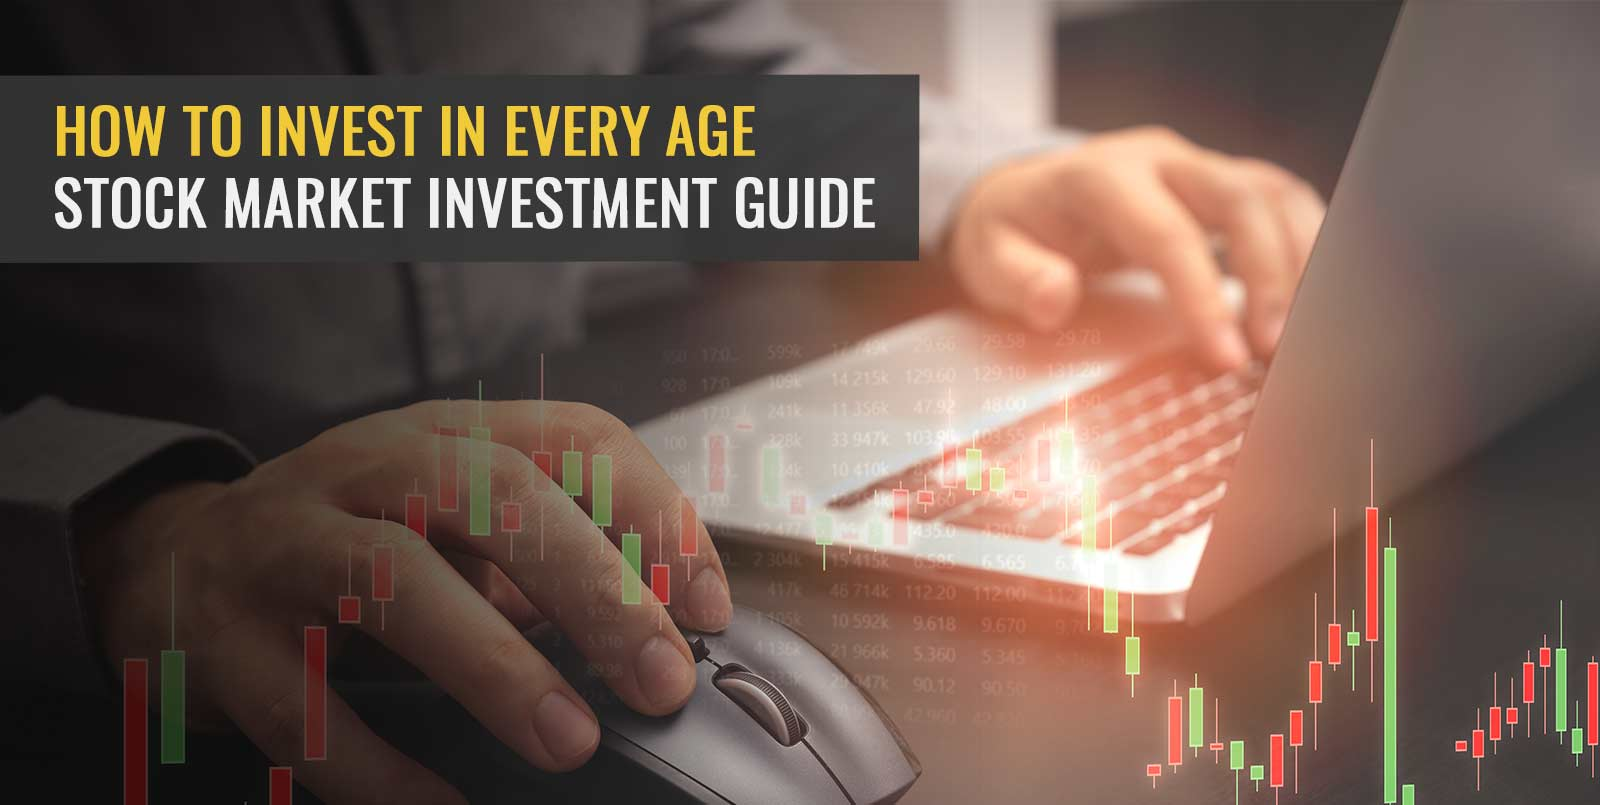 How To Invest In Every Age: Stock Market Investment Guide